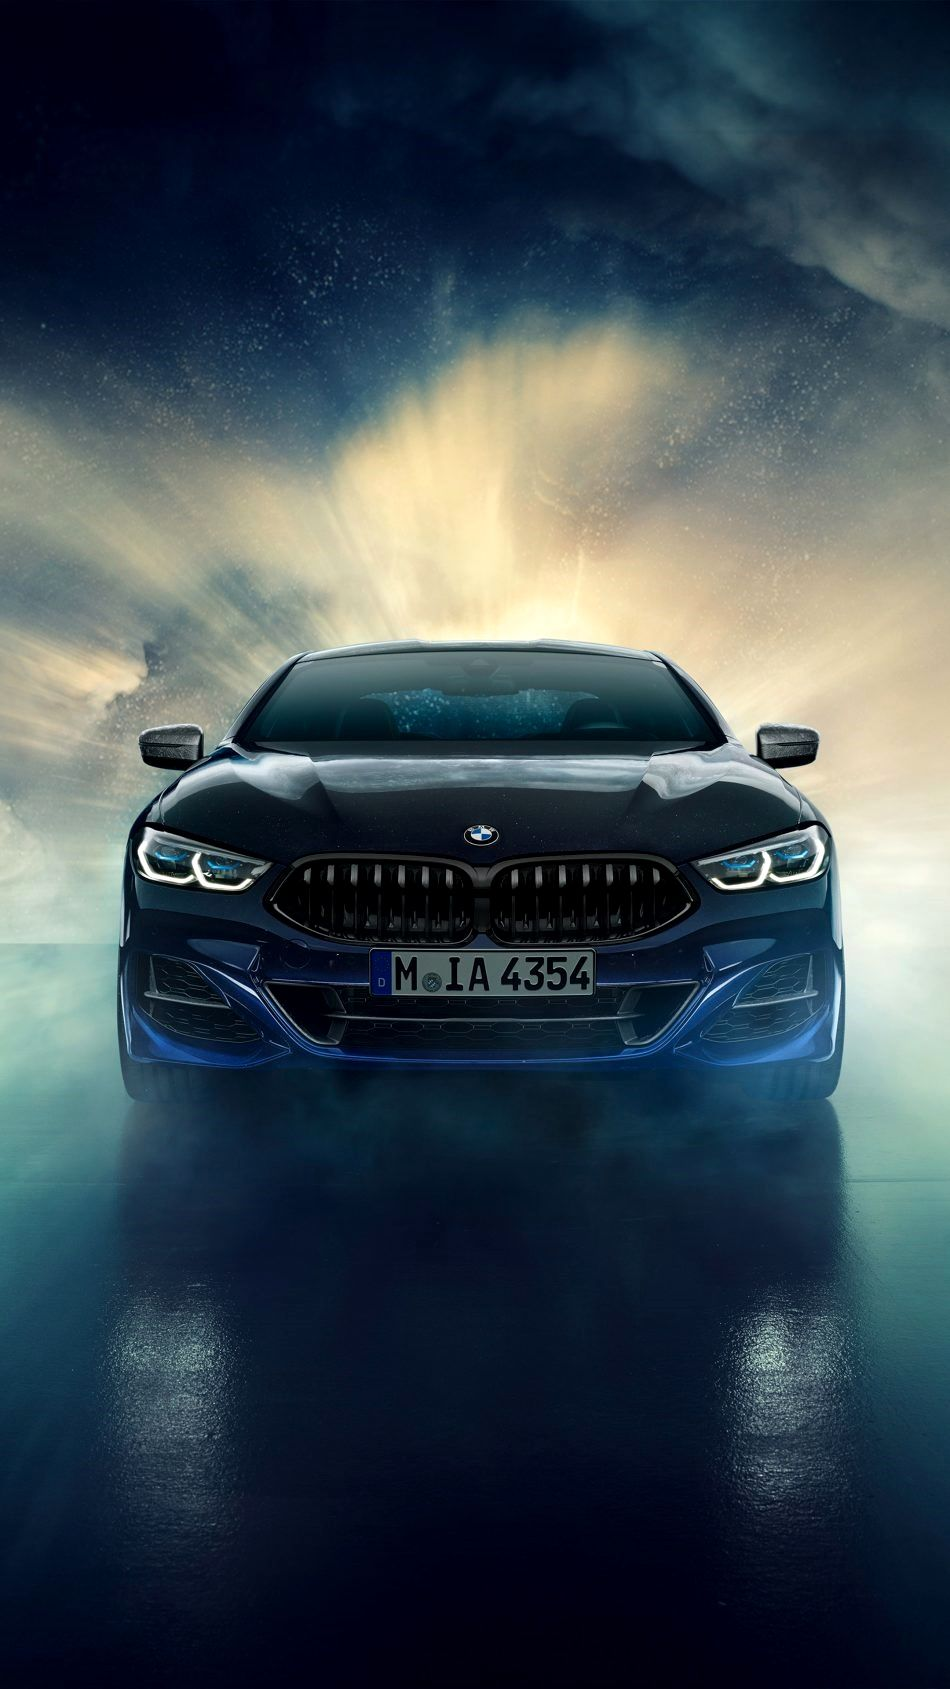 Bmw 4k Mobile Wallpaper Trick Bmw Expensive Cars Car Wallpapers